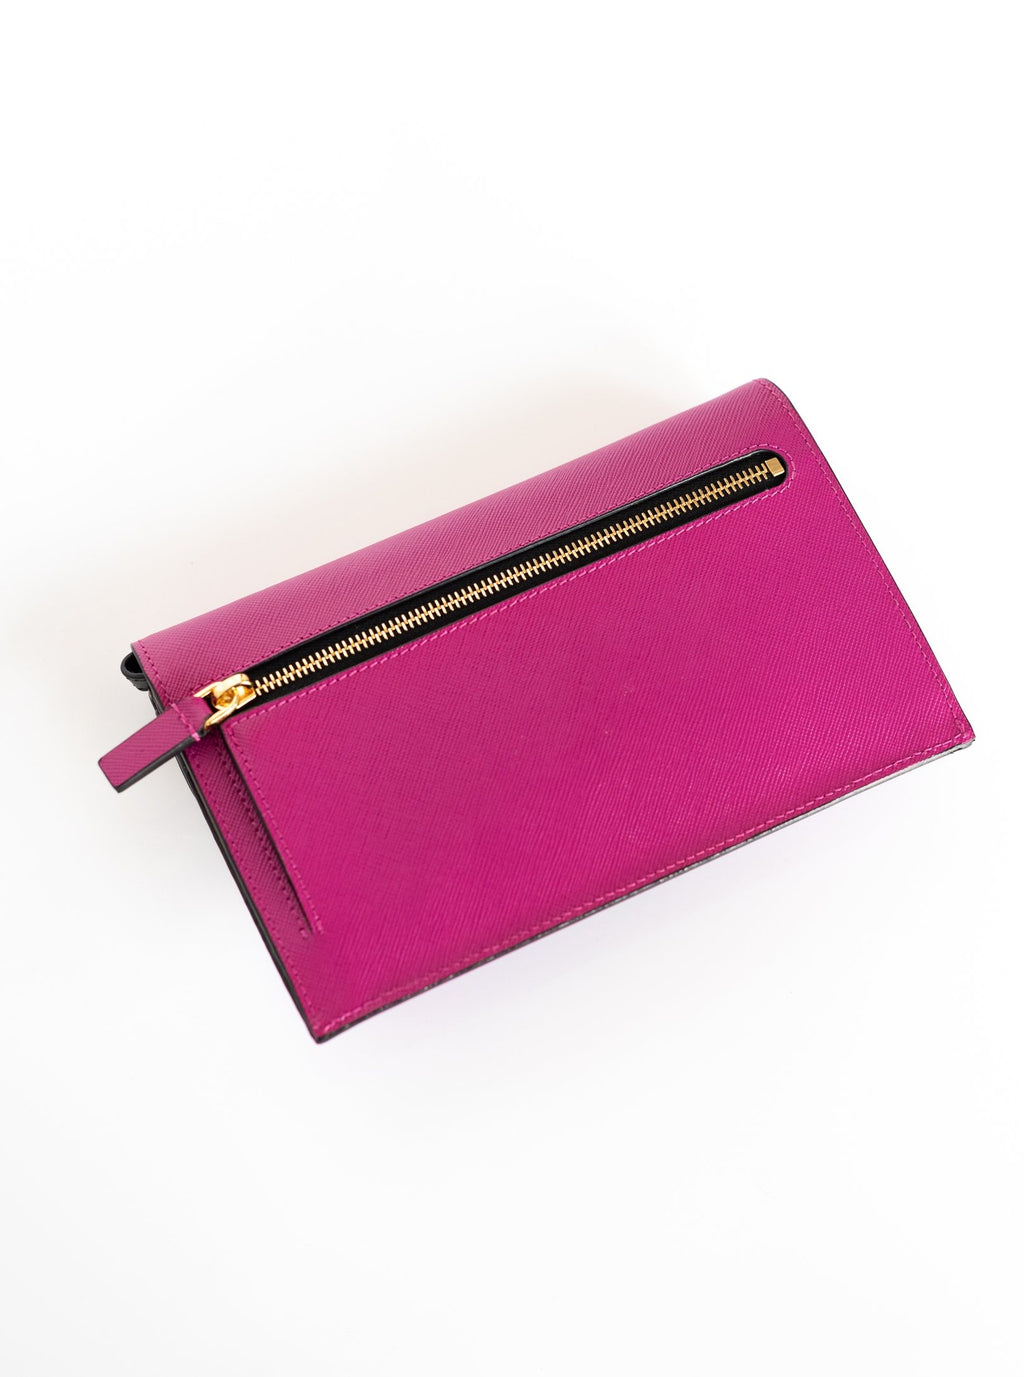 Layered Wallet in Cassis